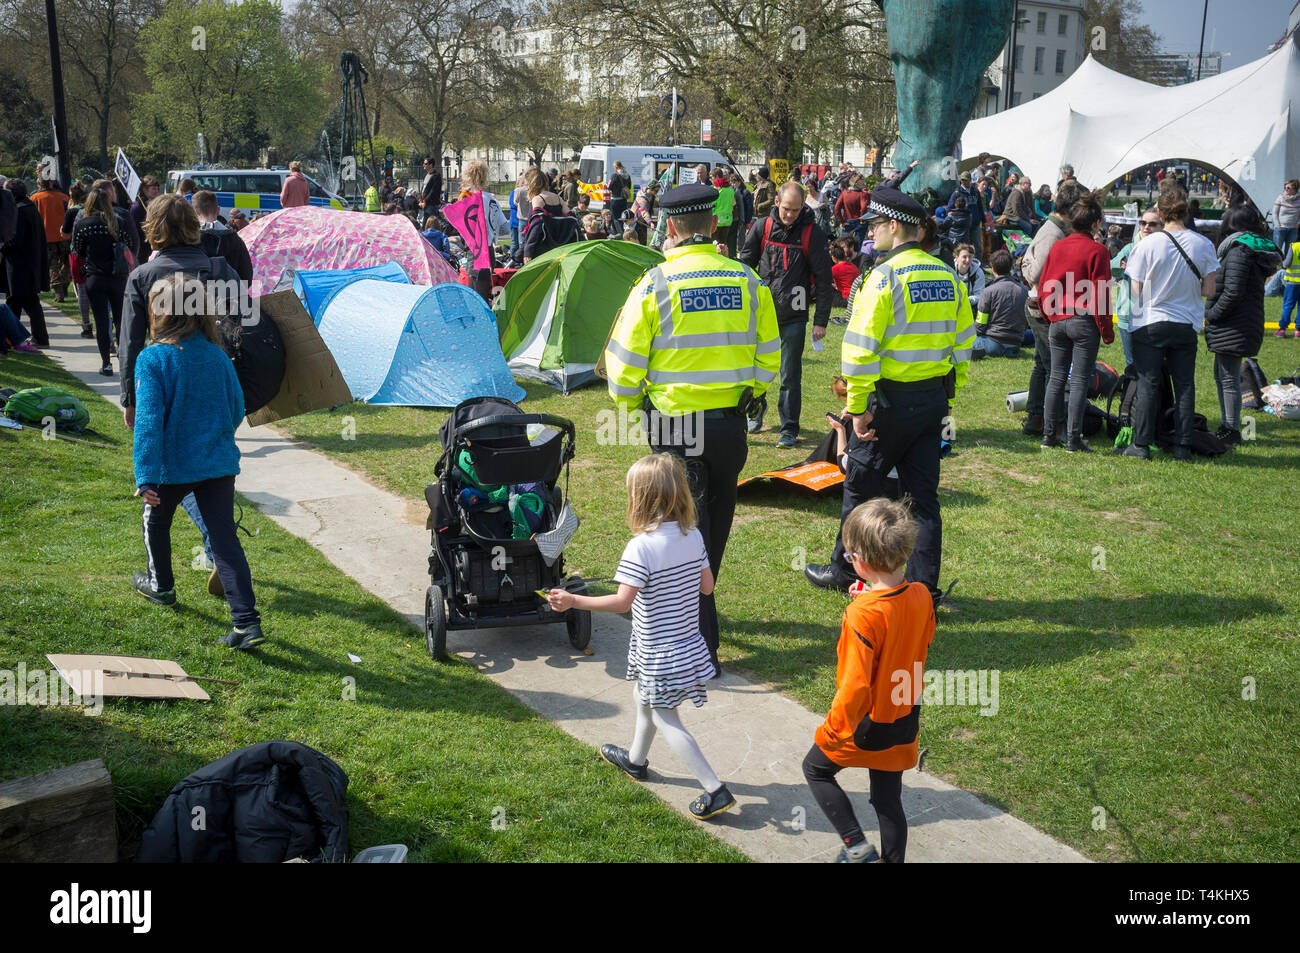 Two policemen from the Metropolitan Police walk through the encampment at the Extinction Rebellion demonstration at Marble Arch - Stock Image